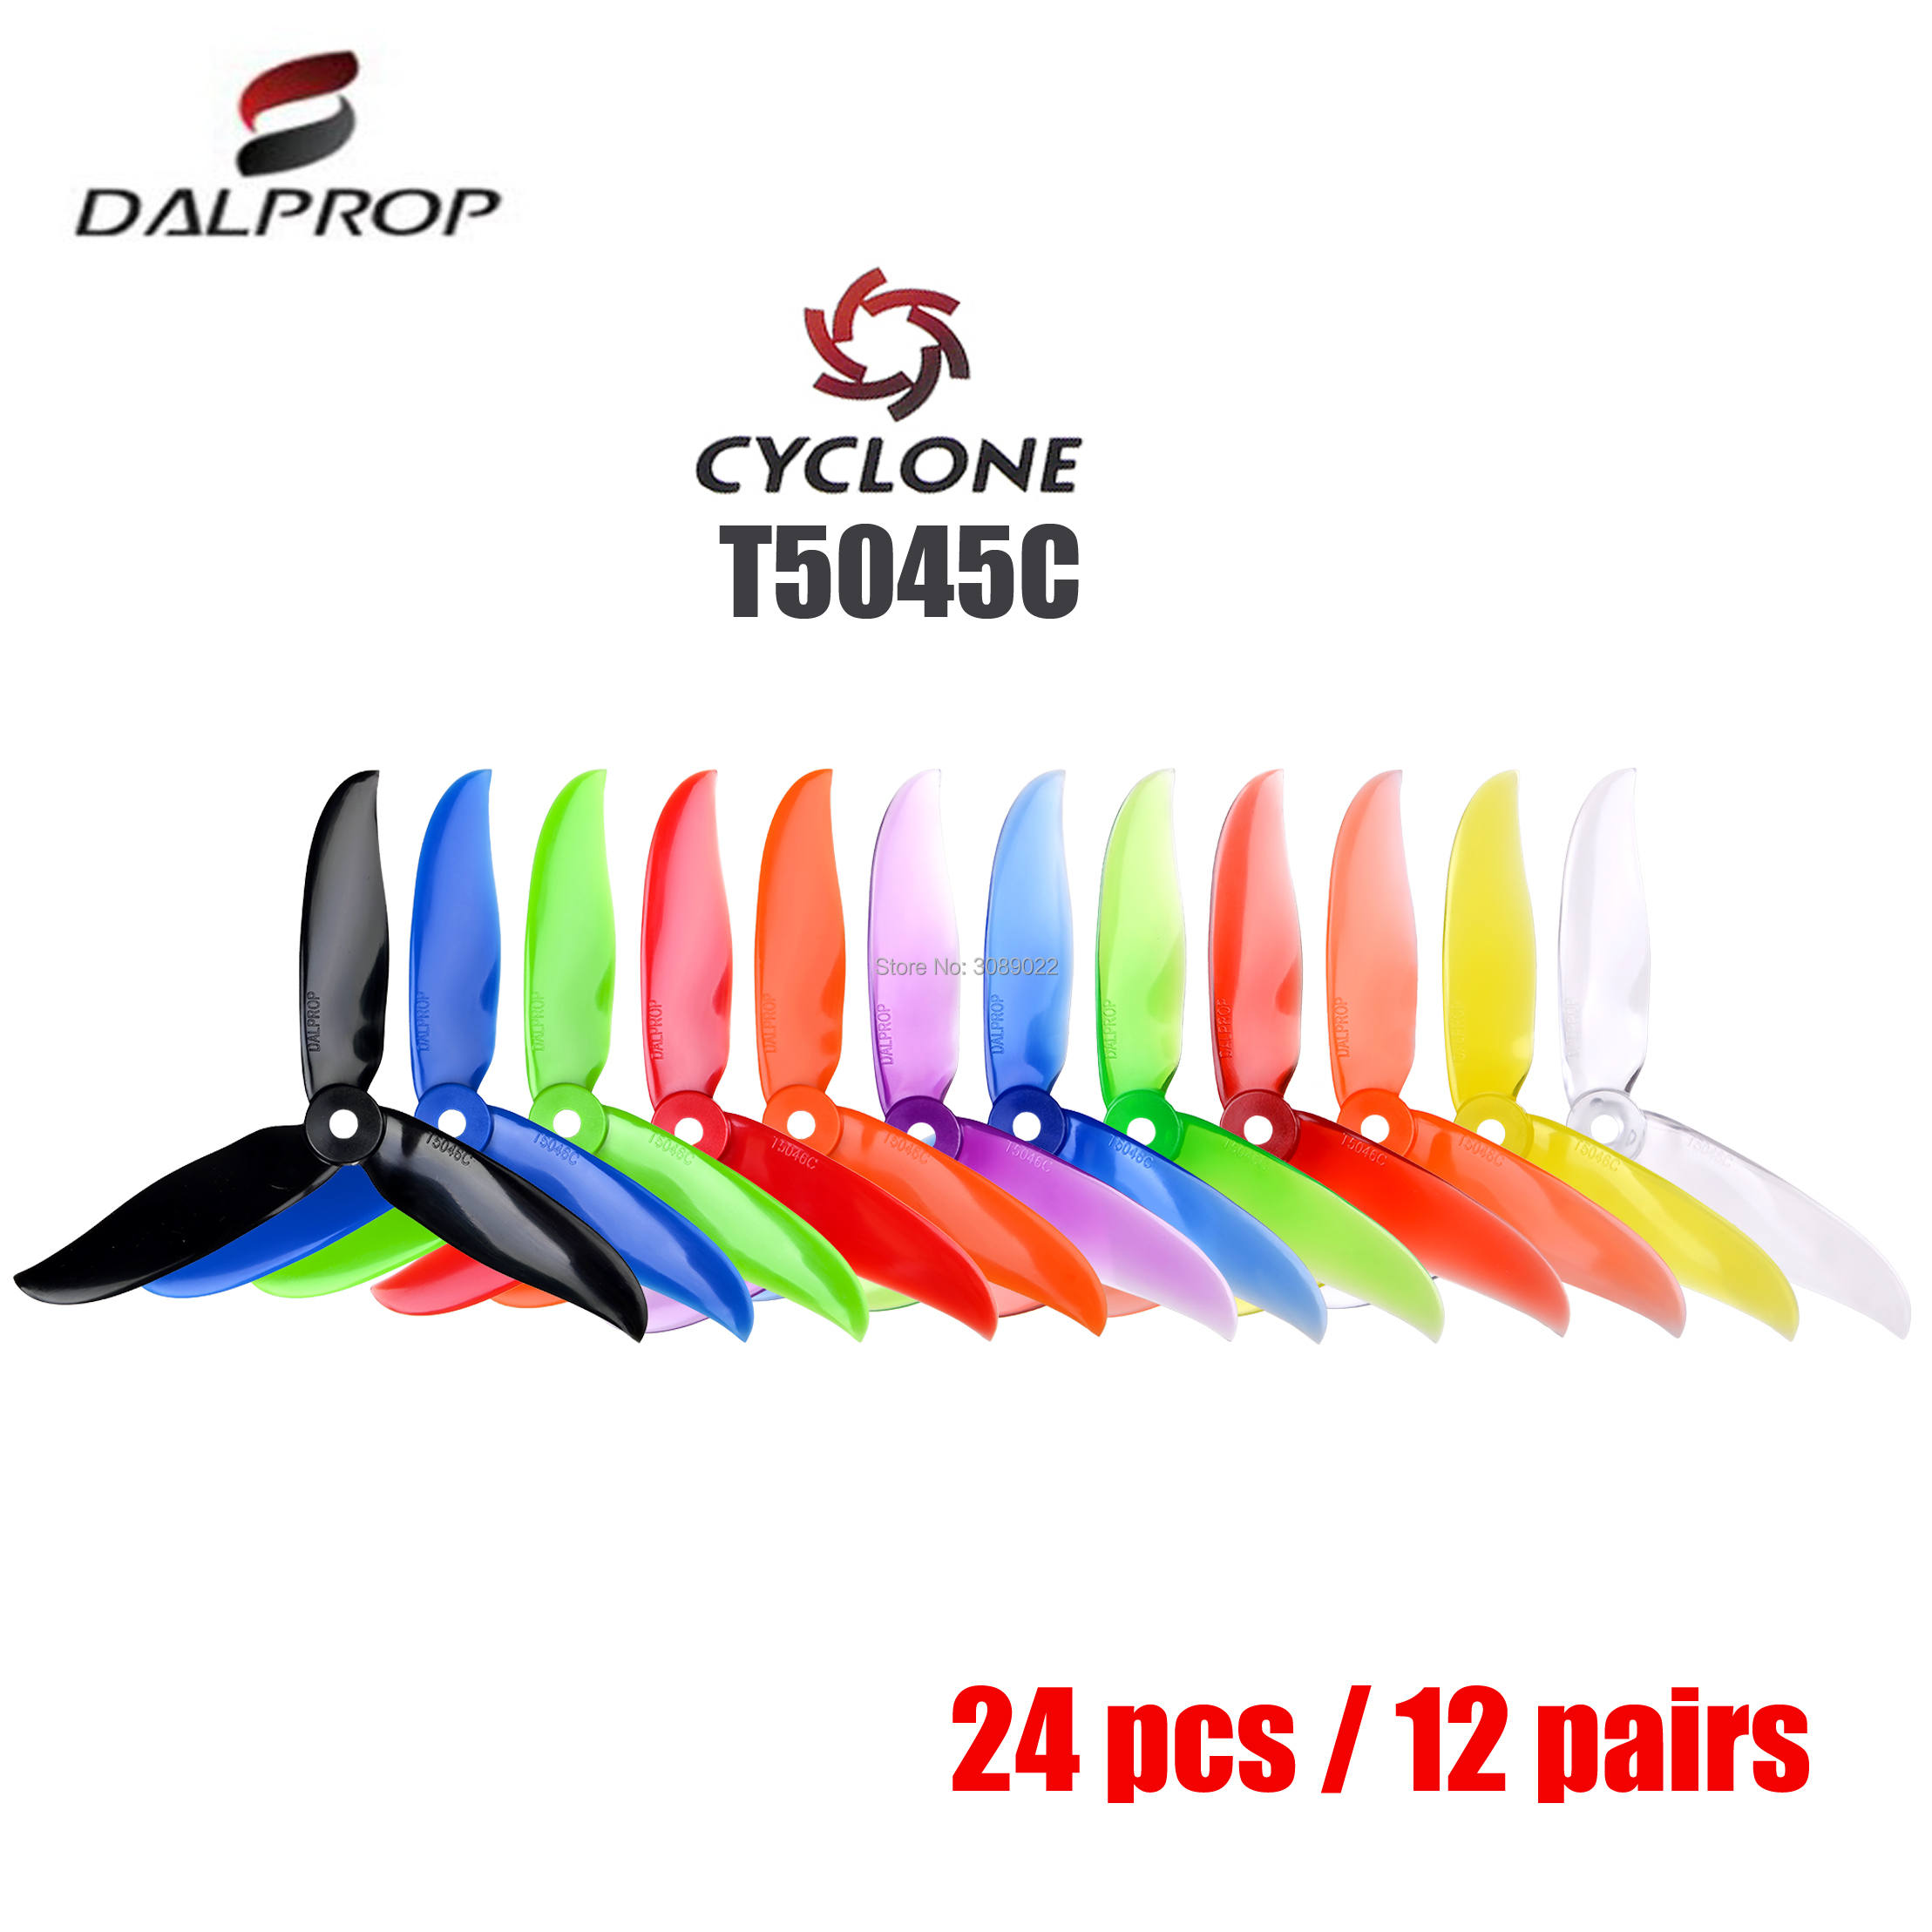 24 pcs / 12 pair DALPROP CYCLONE T5045C T5045BN 5045 3Blade propeller for T-Motor motor FPV Freestyle Drone Quadcopter Chameleon(China)